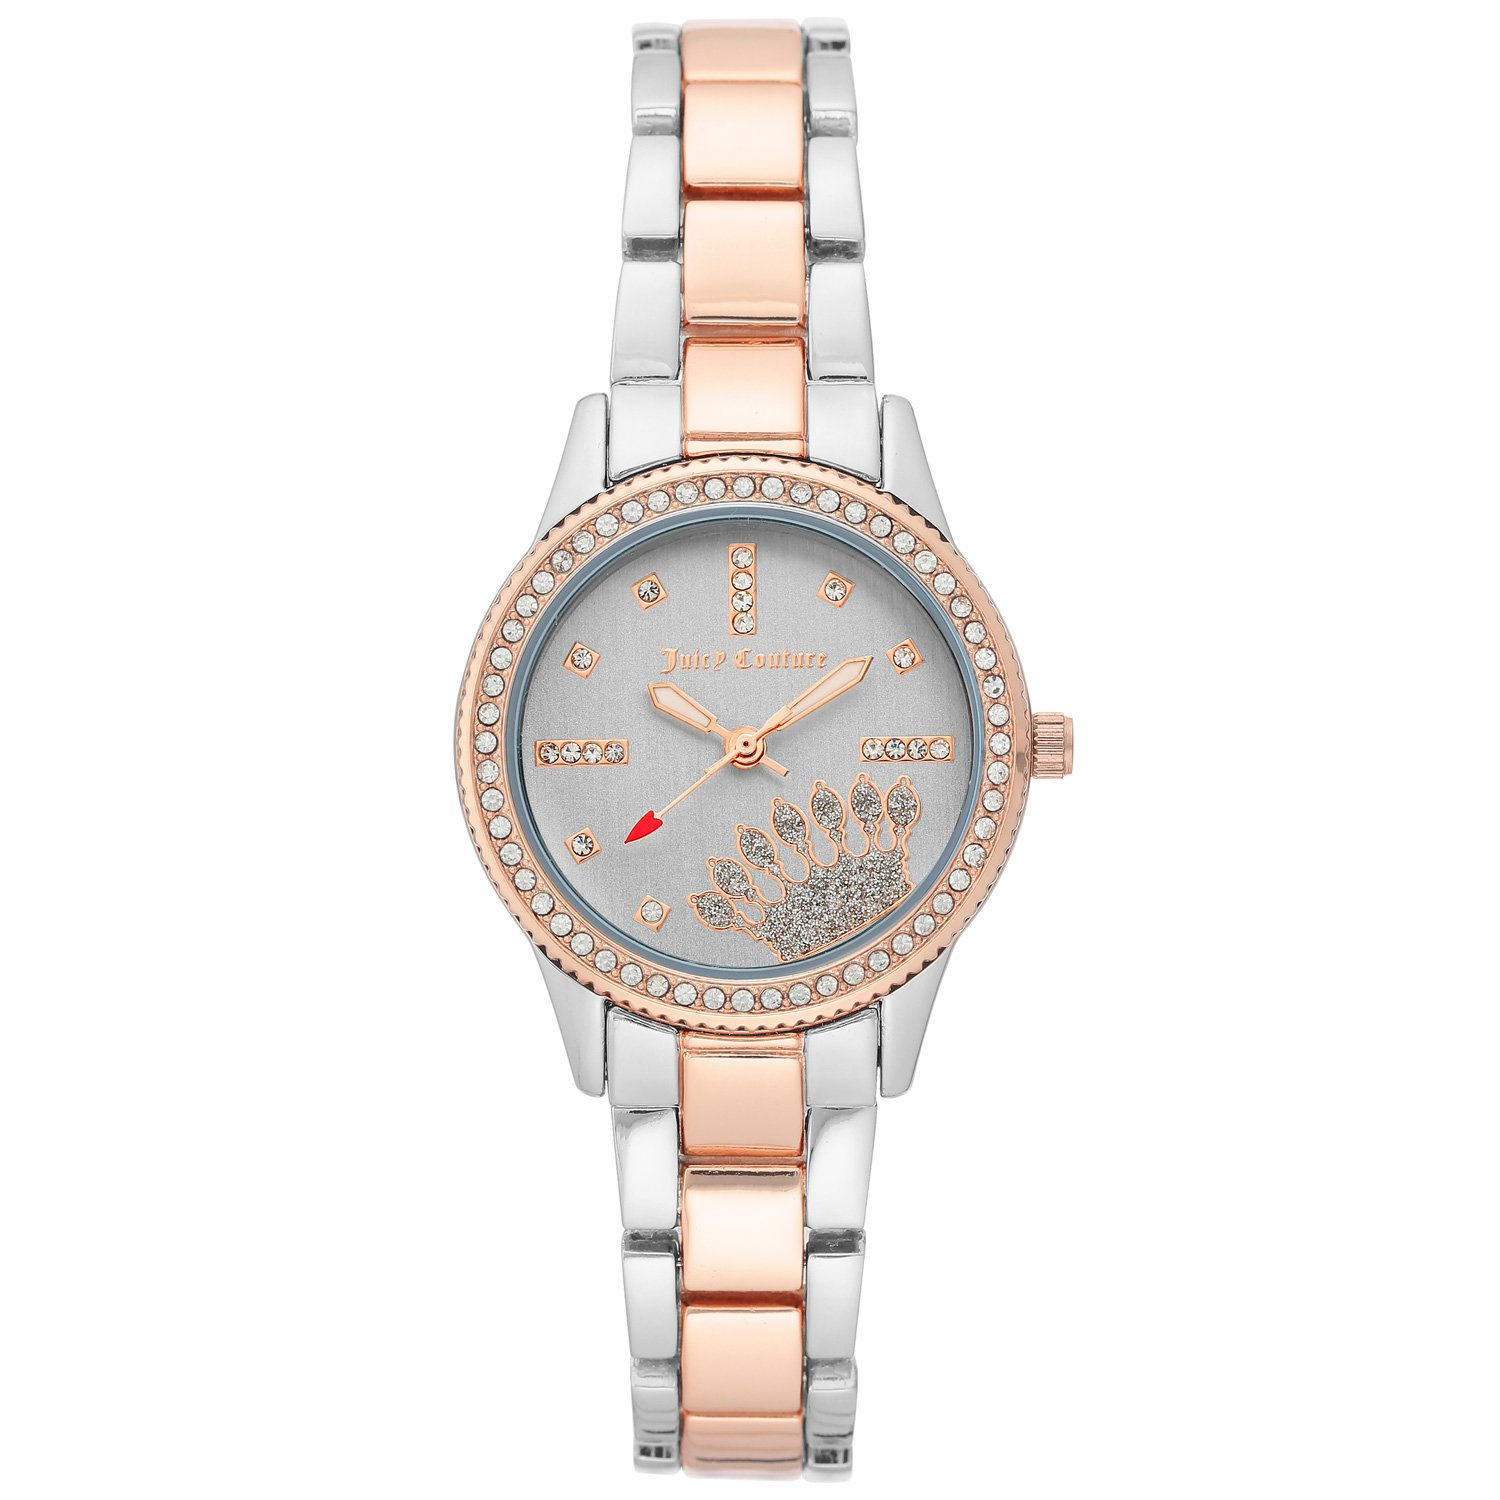 Juicy Couture Women's Watch Rose Gold JC/1110SVRT